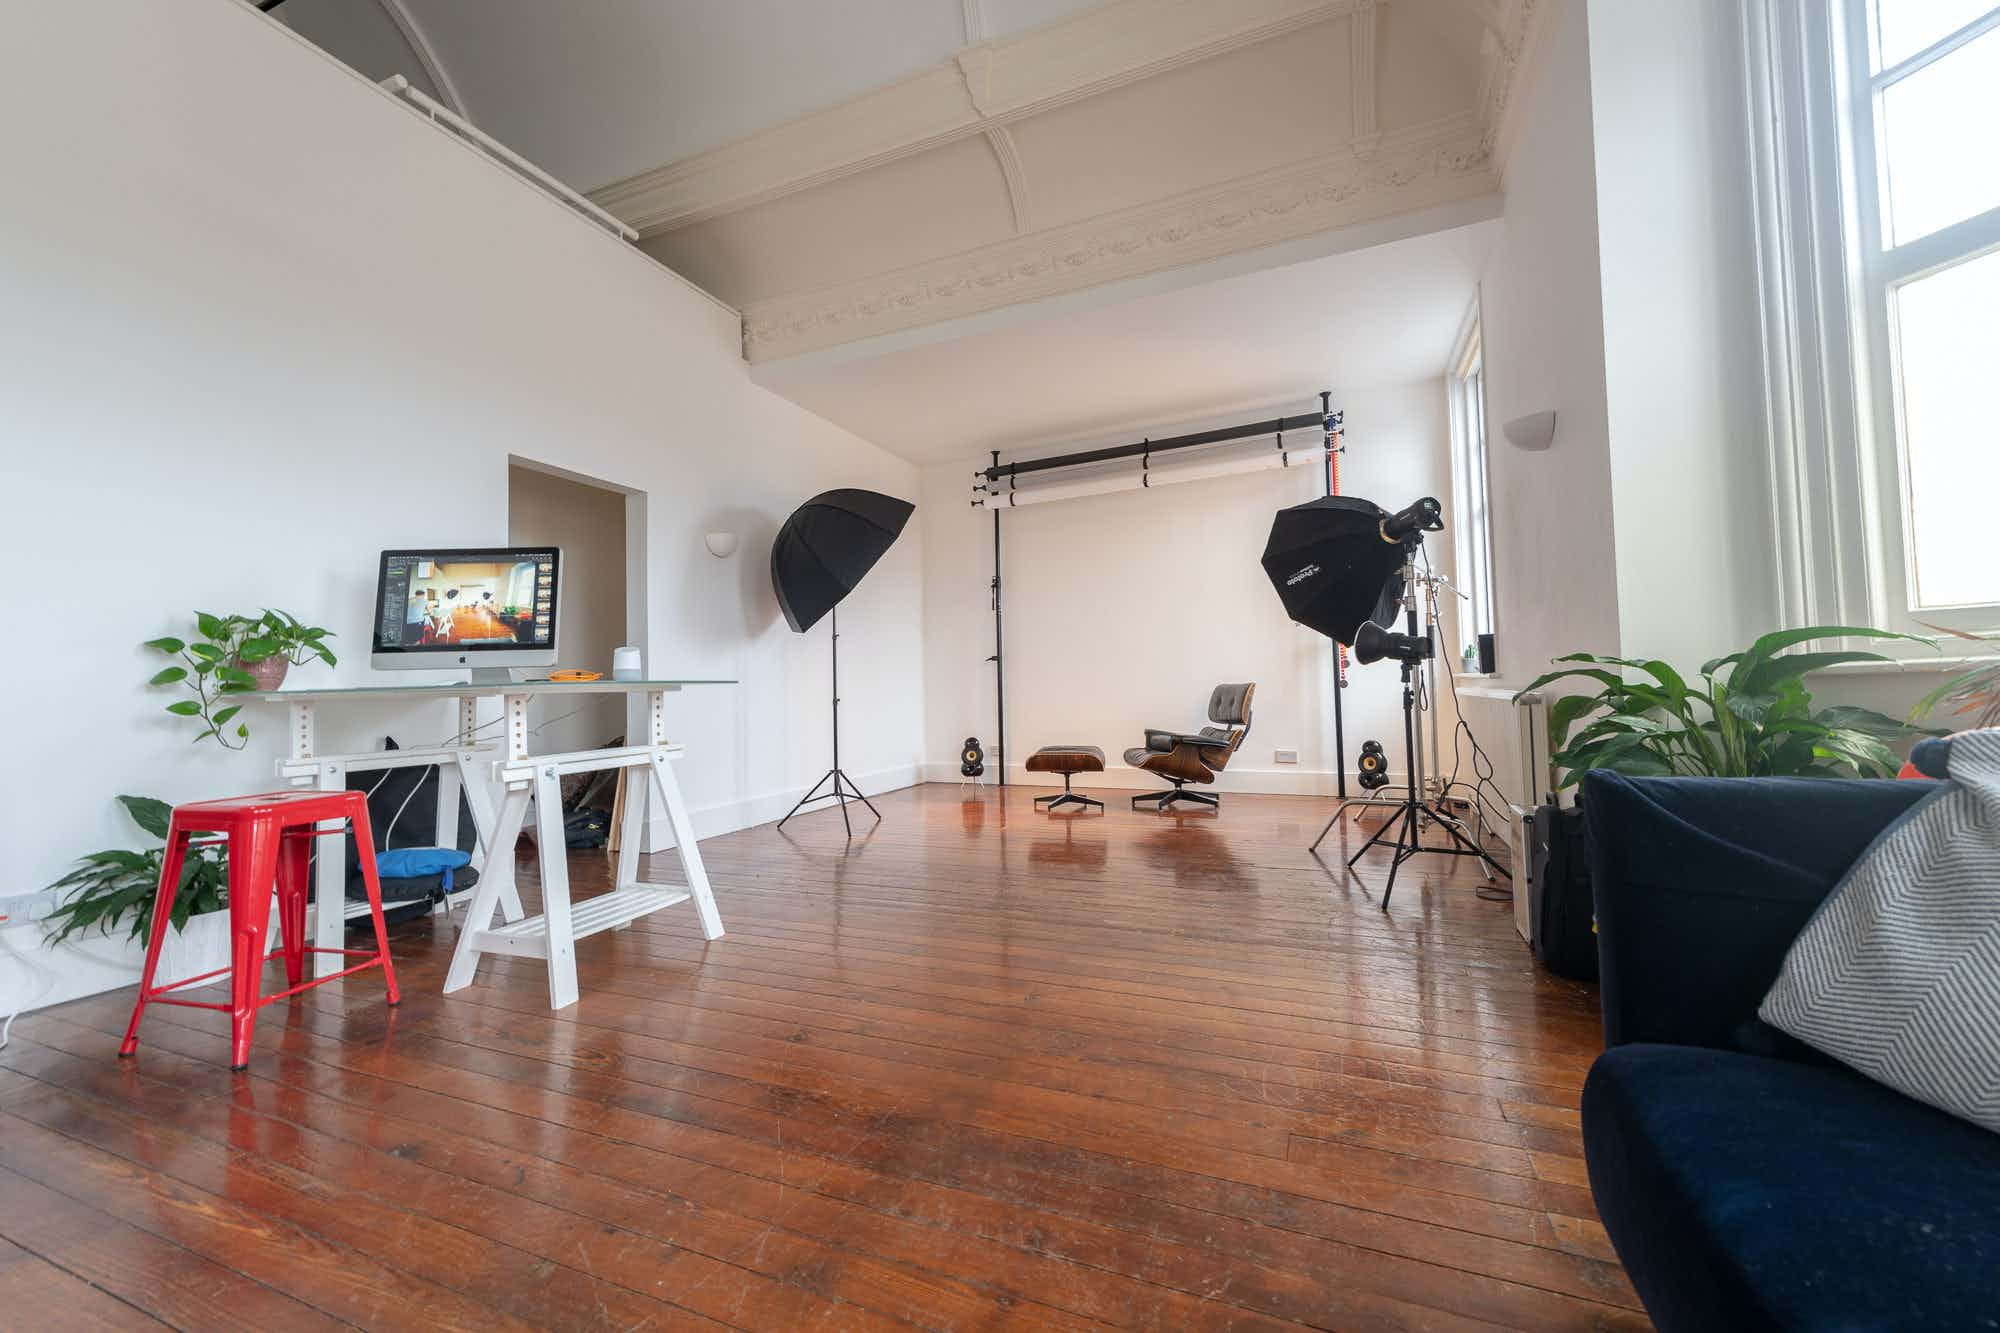 Photography Studio, My Studio Hire